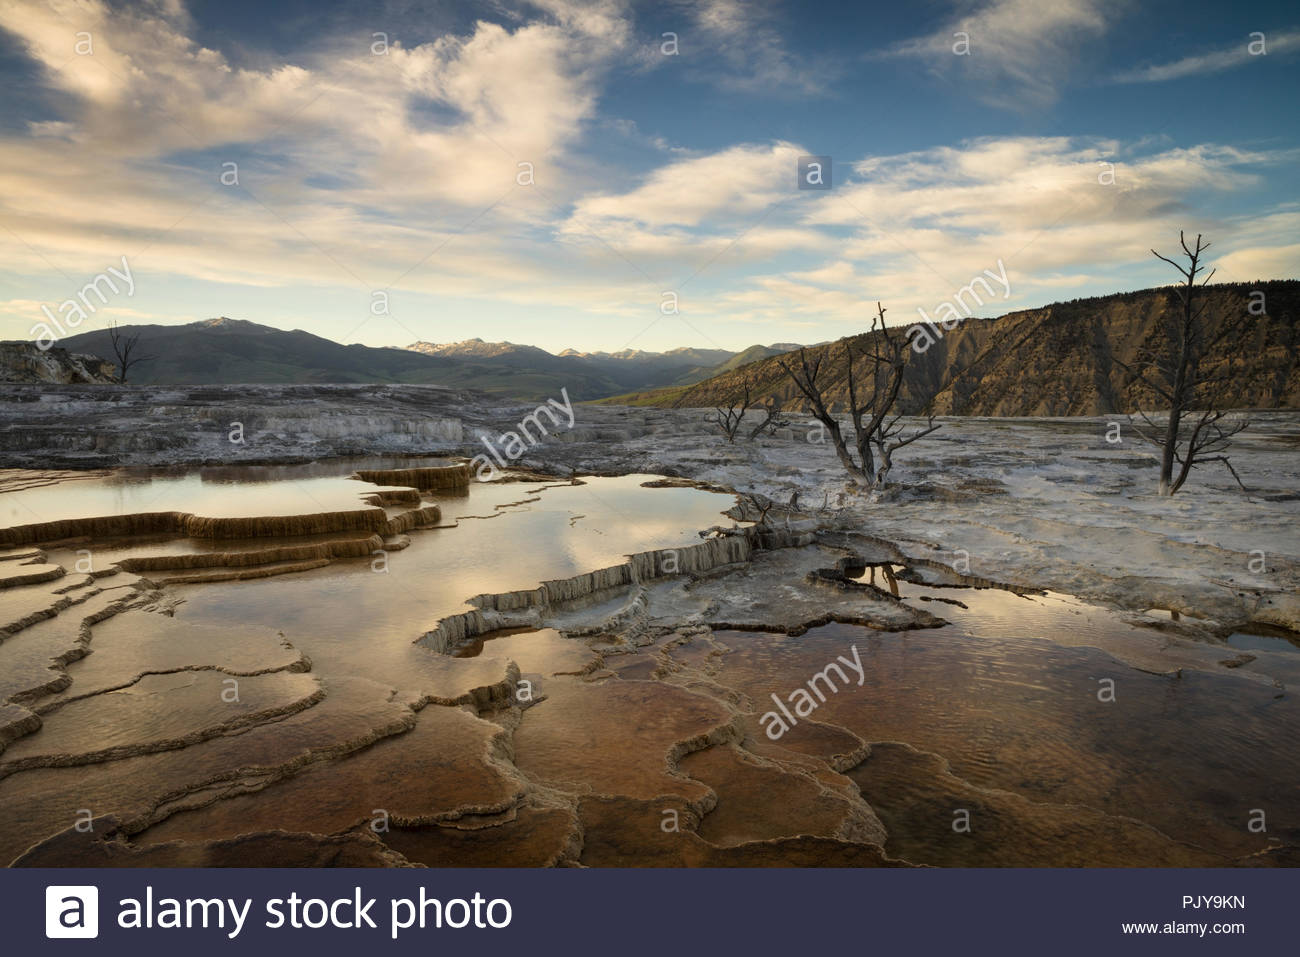 Mammoth Hot Springs al atardecer, el Parque Nacional Yellowstone, Wyoming Foto de stock